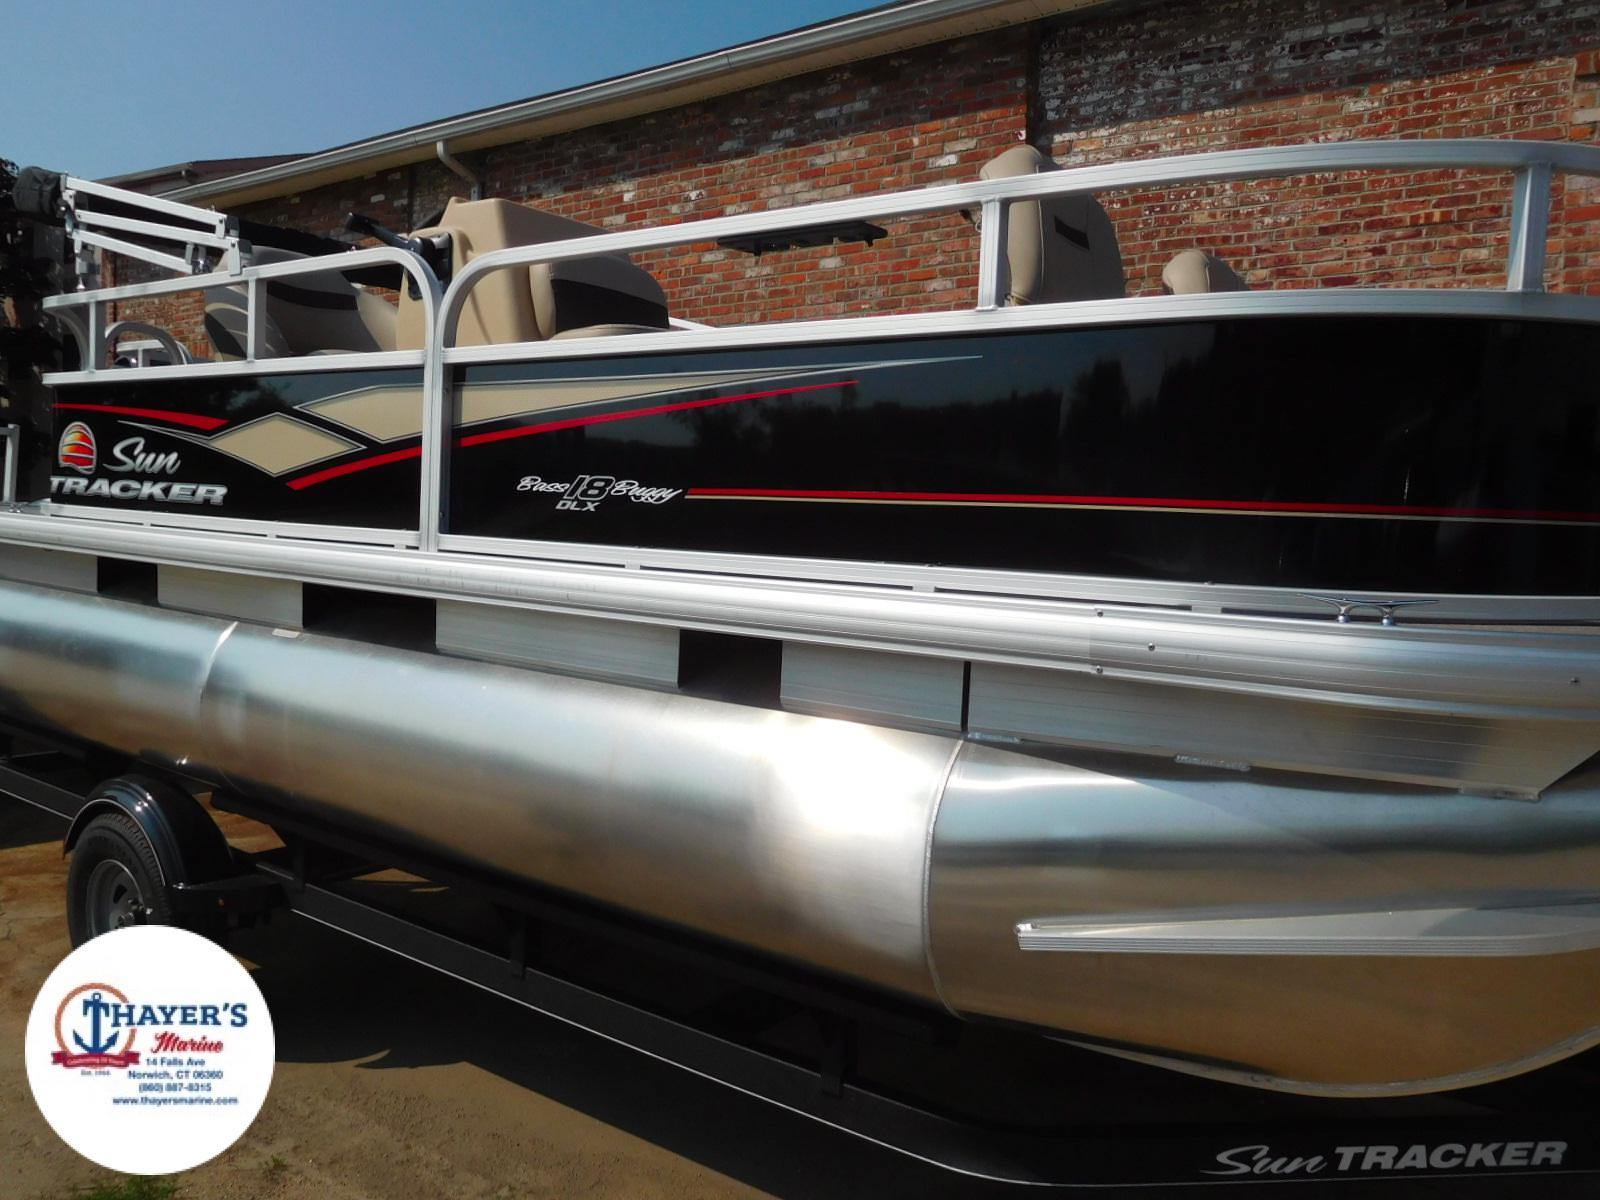 2018 Sun Tracker boat for sale, model of the boat is Bass Buggy 18 DLX & Image # 24 of 35